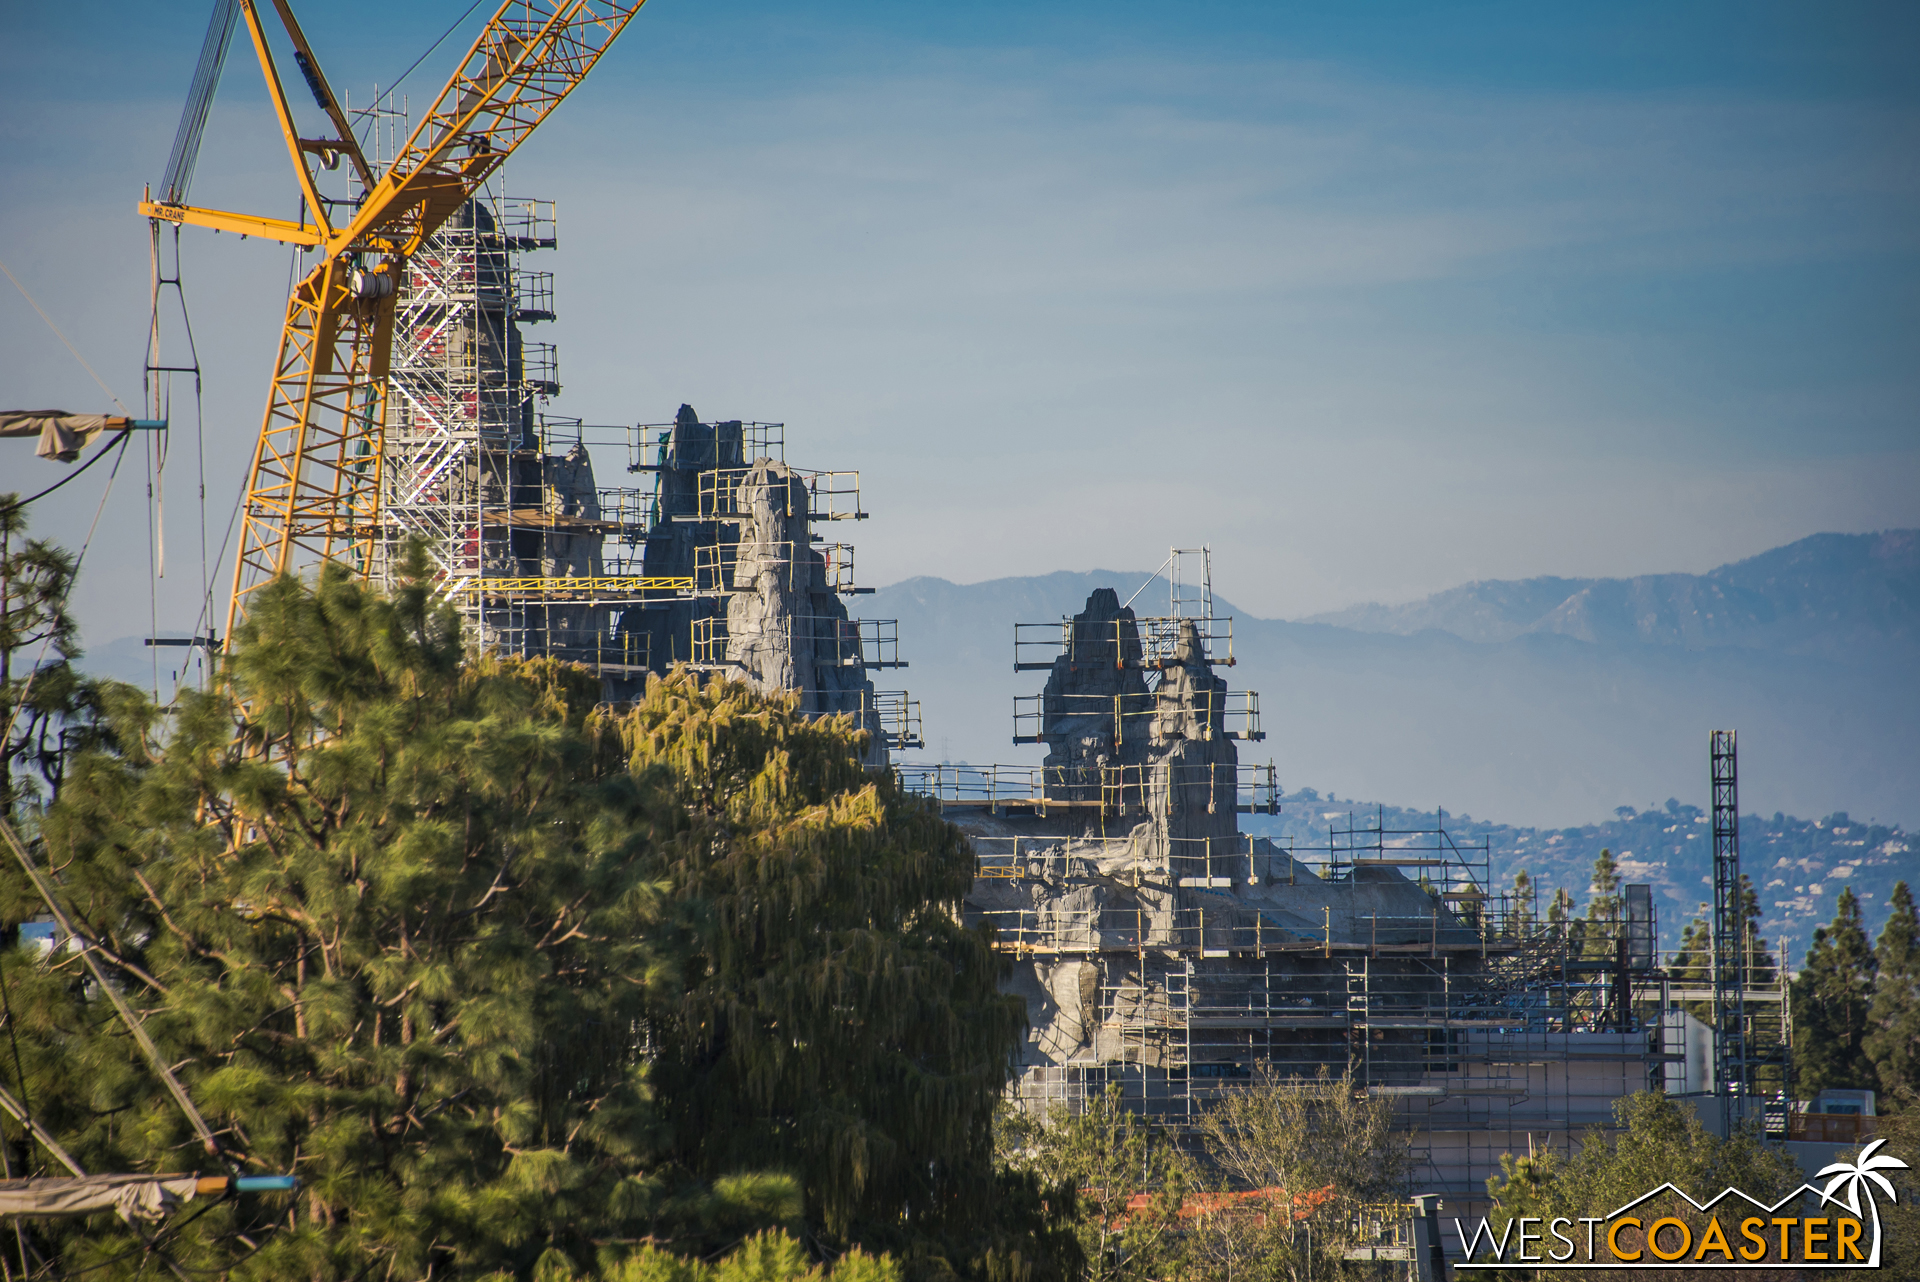 It'll be pretty exciting to see the finished forced perspective effect of this behind the Rivers of America and Frontierland.